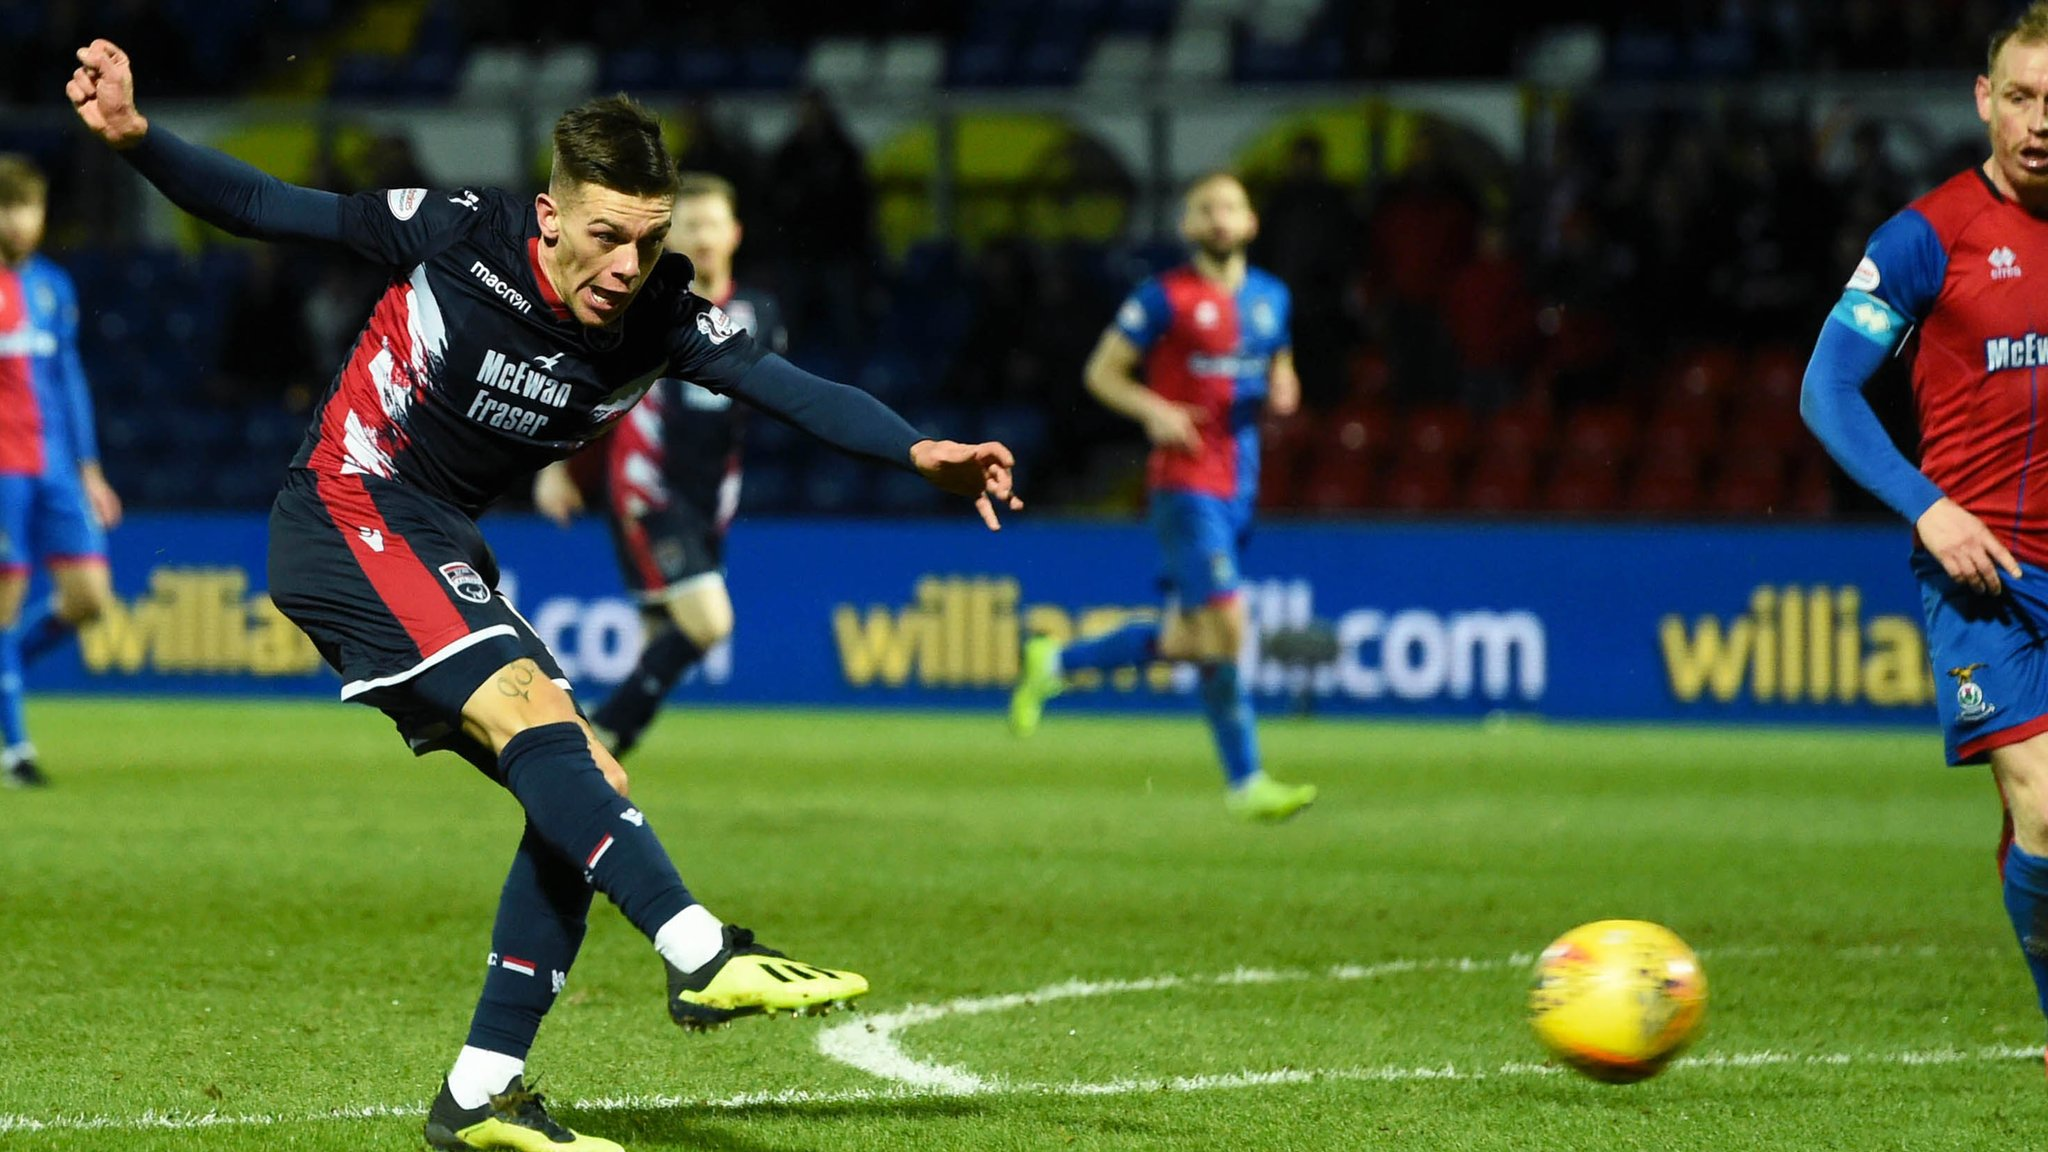 Ross County 2-2 Inverness CT: Josh Mullin secures Highland derby replay